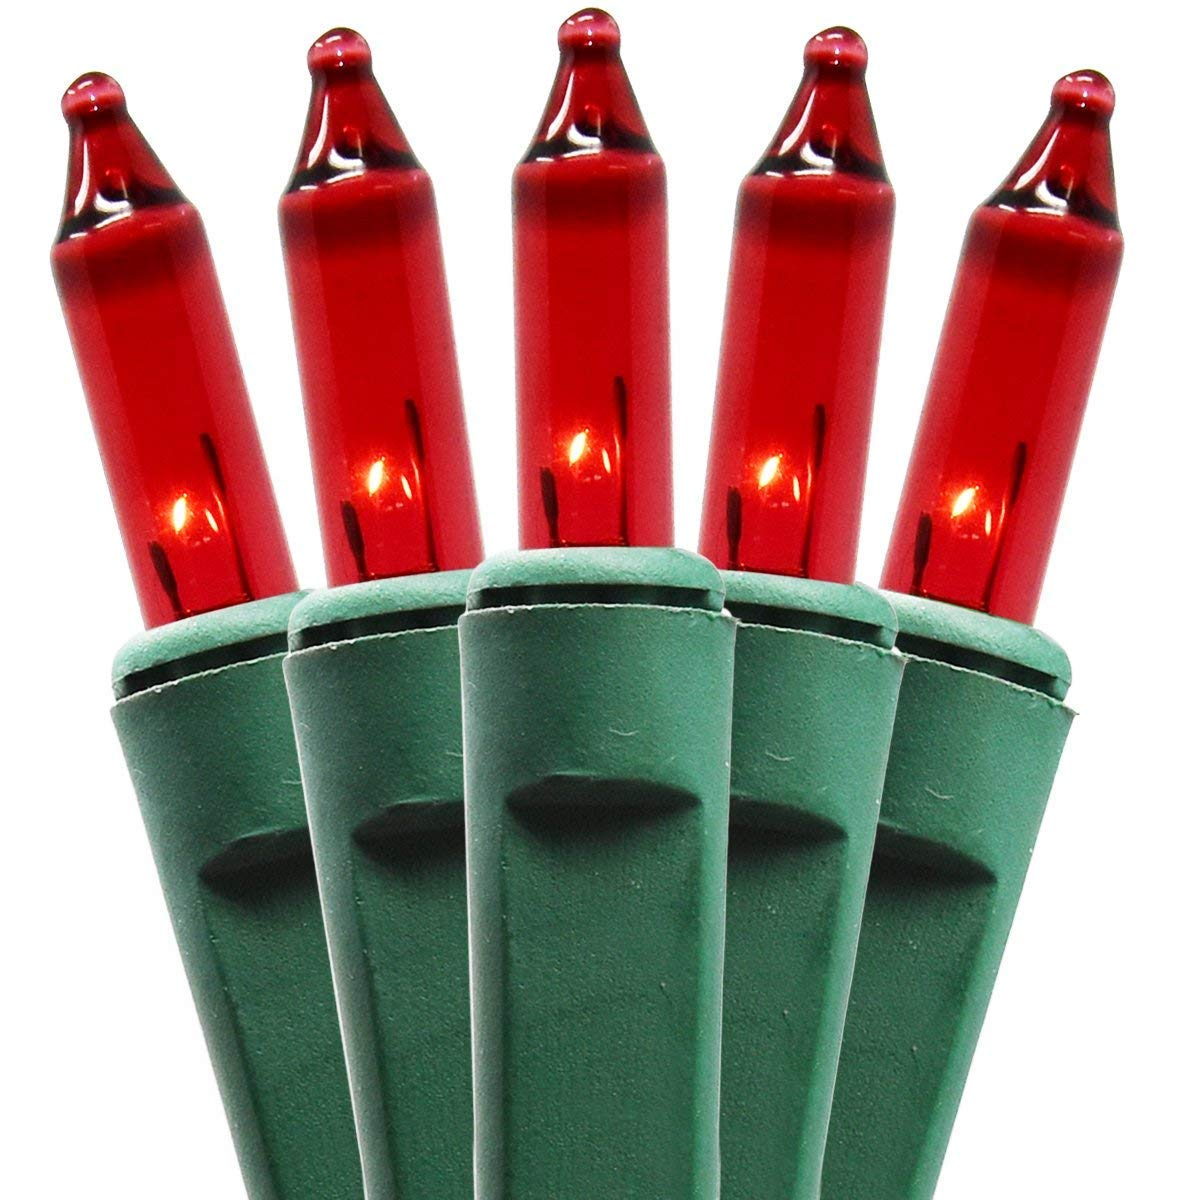 Holiday Essence Red Musical Christmas Lights Plays 25 Classical Holiday Songs 140 Indoor 8 Function Chaser Green Wire 26 Ft Wire Length 2 Space Between Bulbs